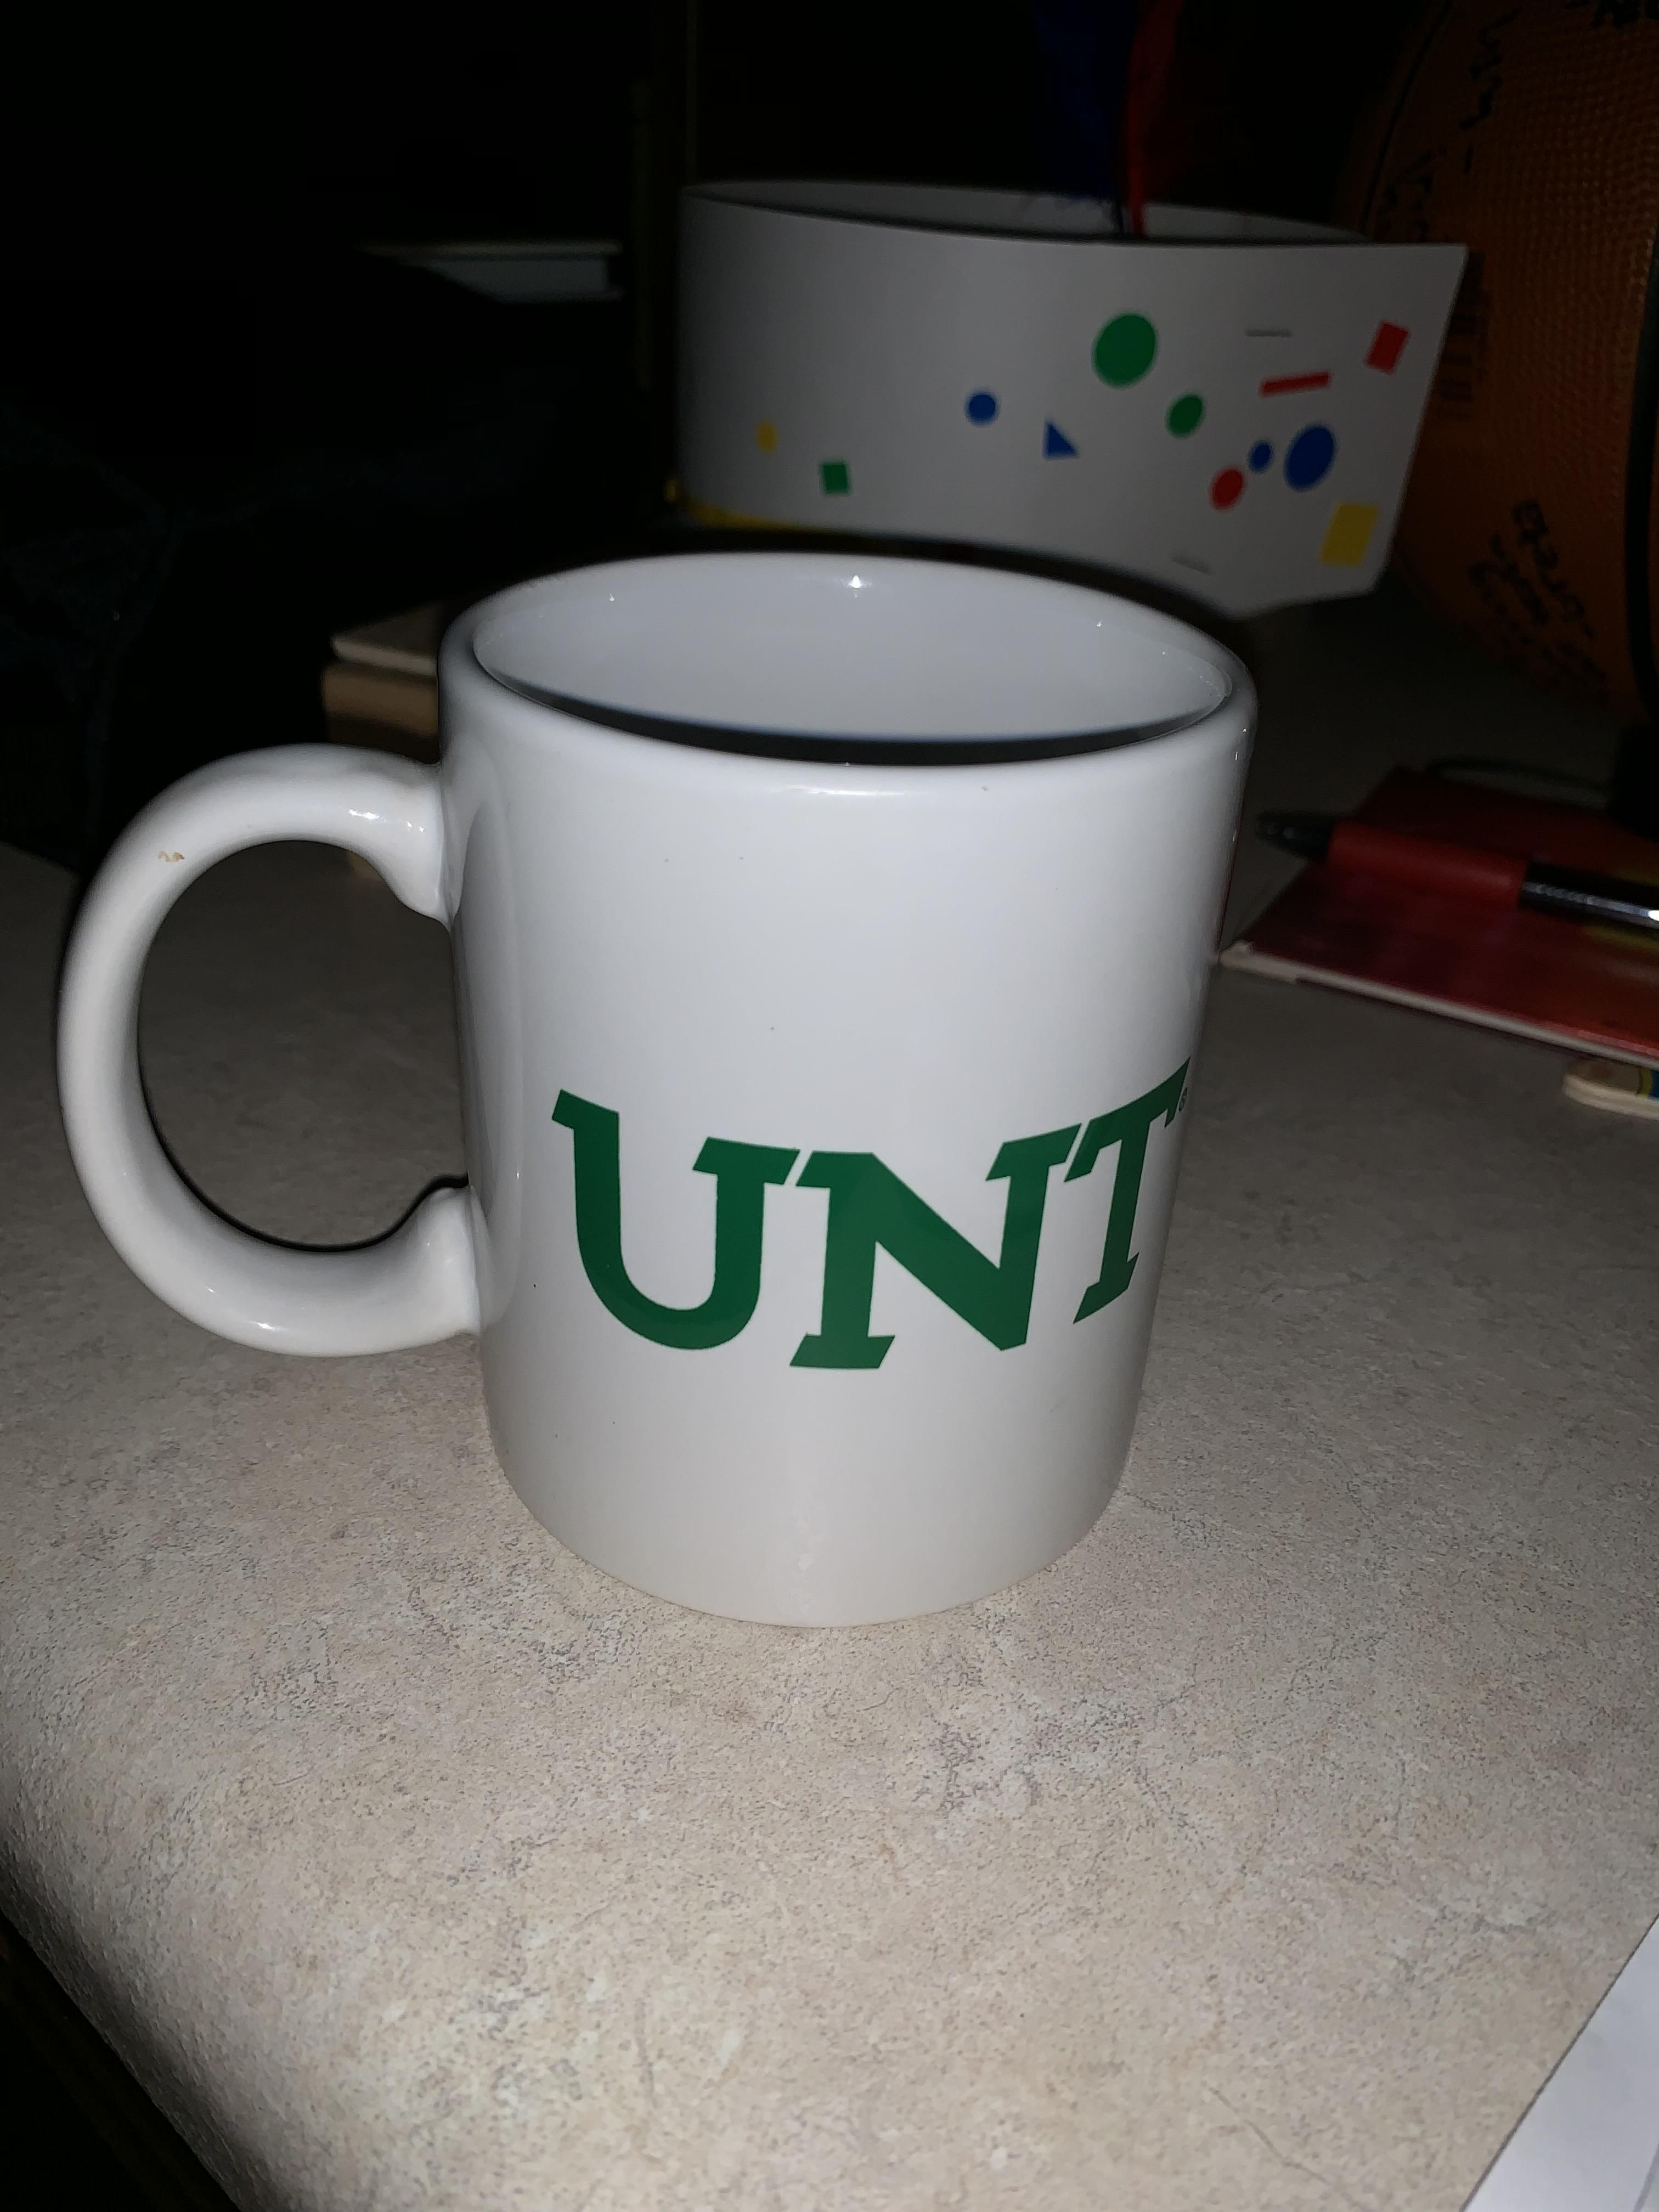 I don't think the University of Northern Tennessee really thought this mug design through